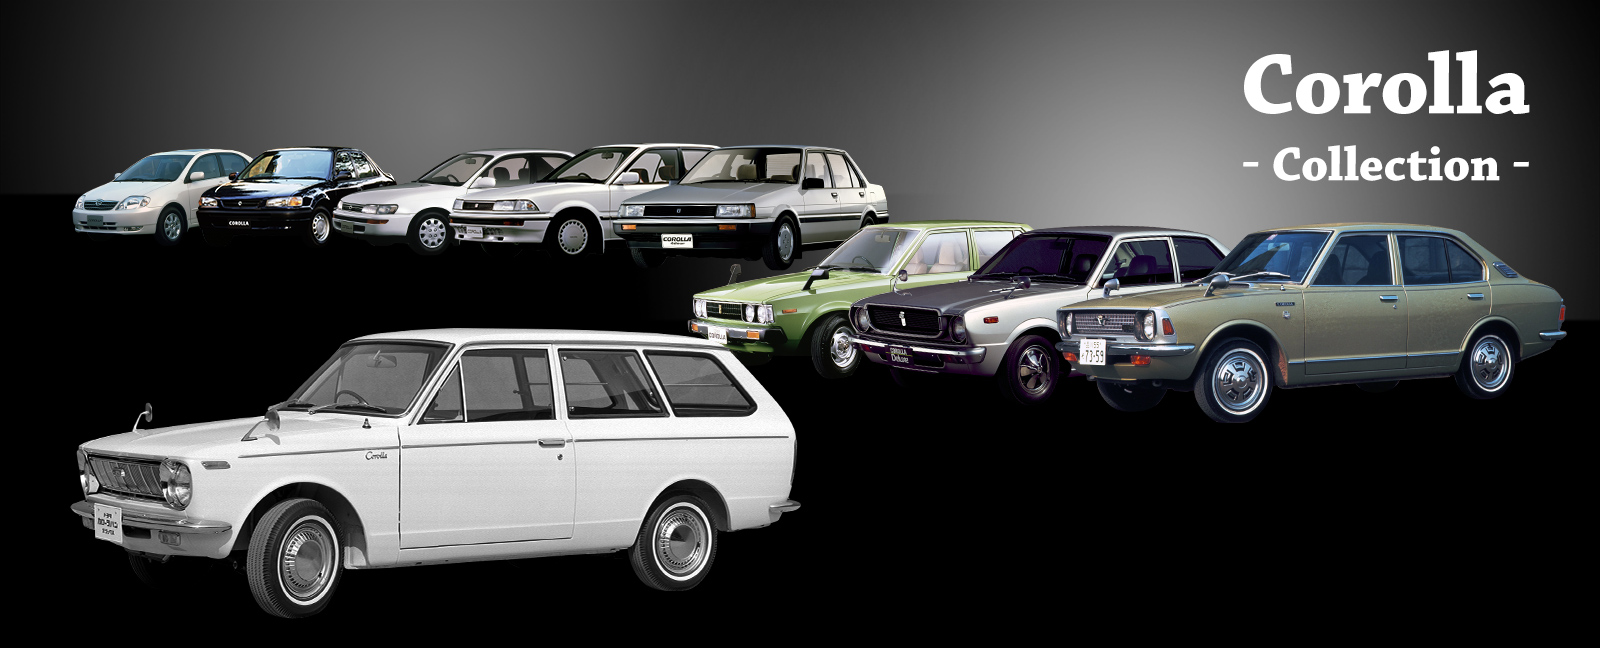 Corolla -Collection-